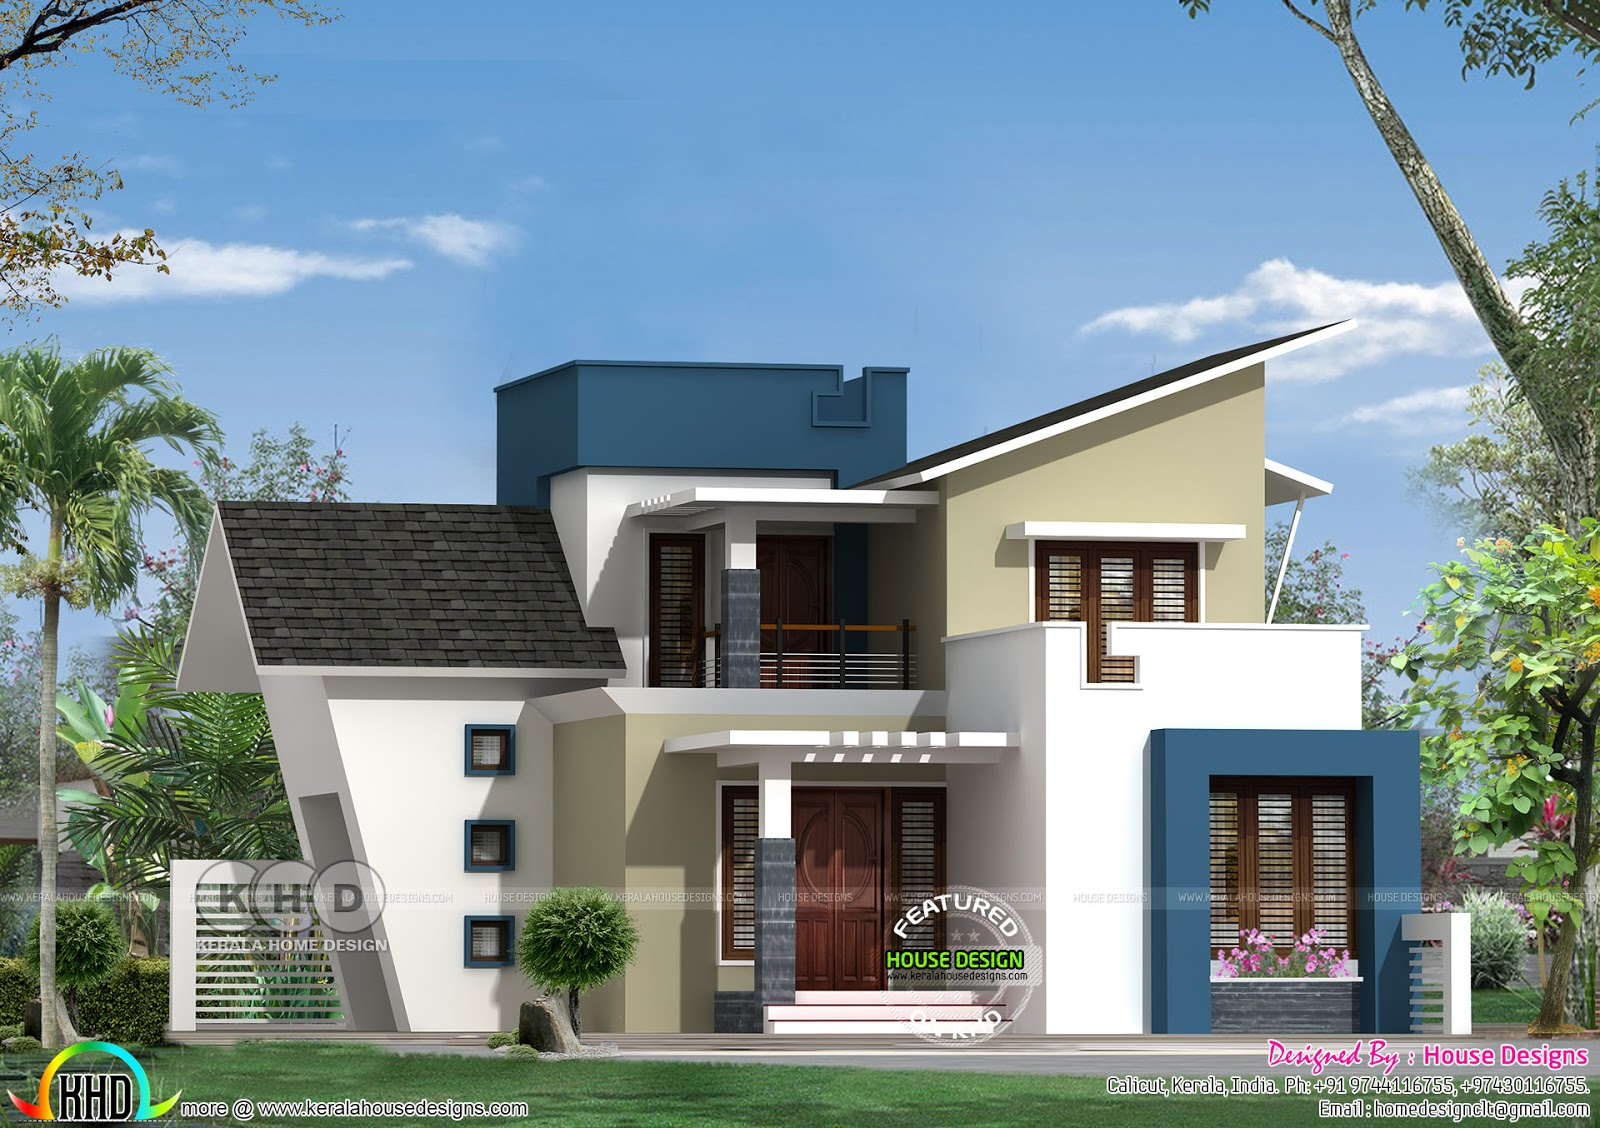 House Designs New Home Design By House Designs From Calicut